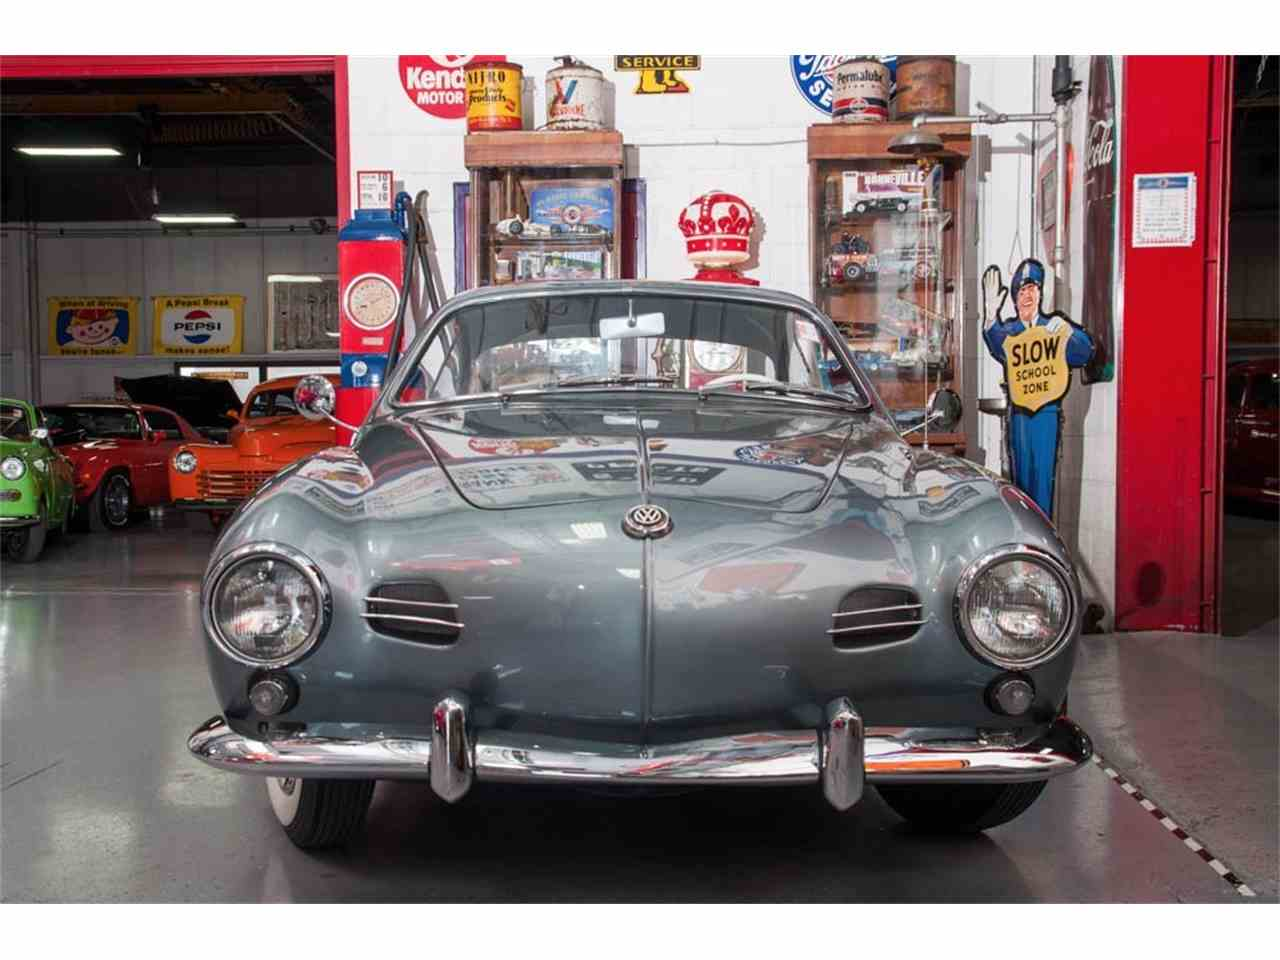 Classic car inspections by classic car experts